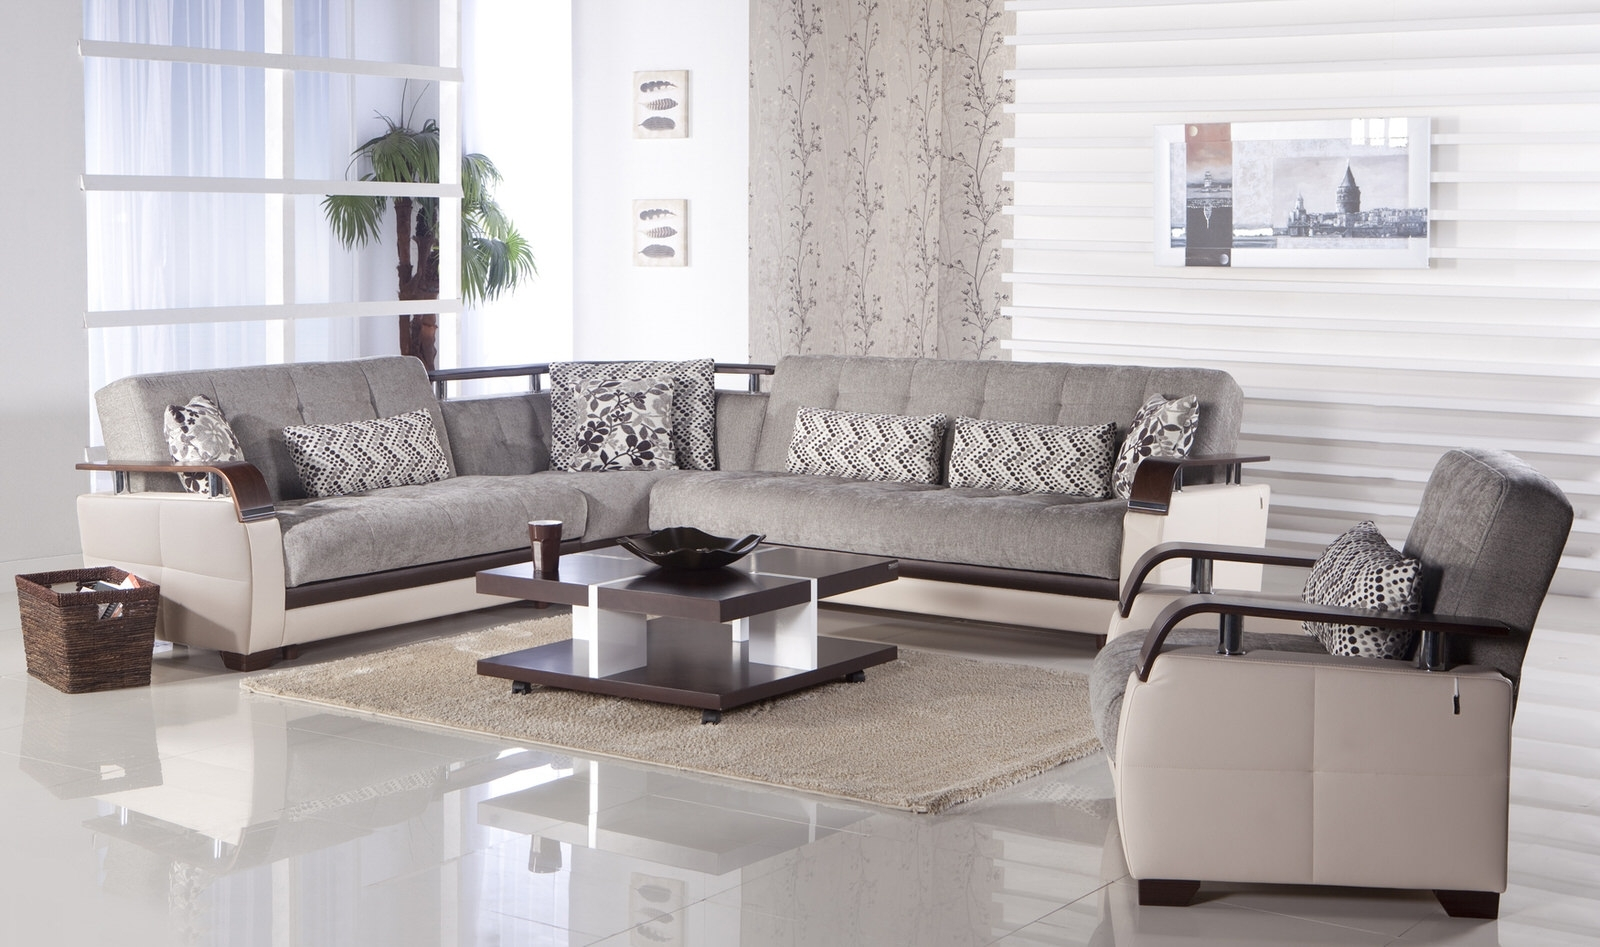 Natural Valencia Grey Sectional Sofaistikbal (Sunset) Within Light Grey Sectional Sofas (Photo 9 of 10)